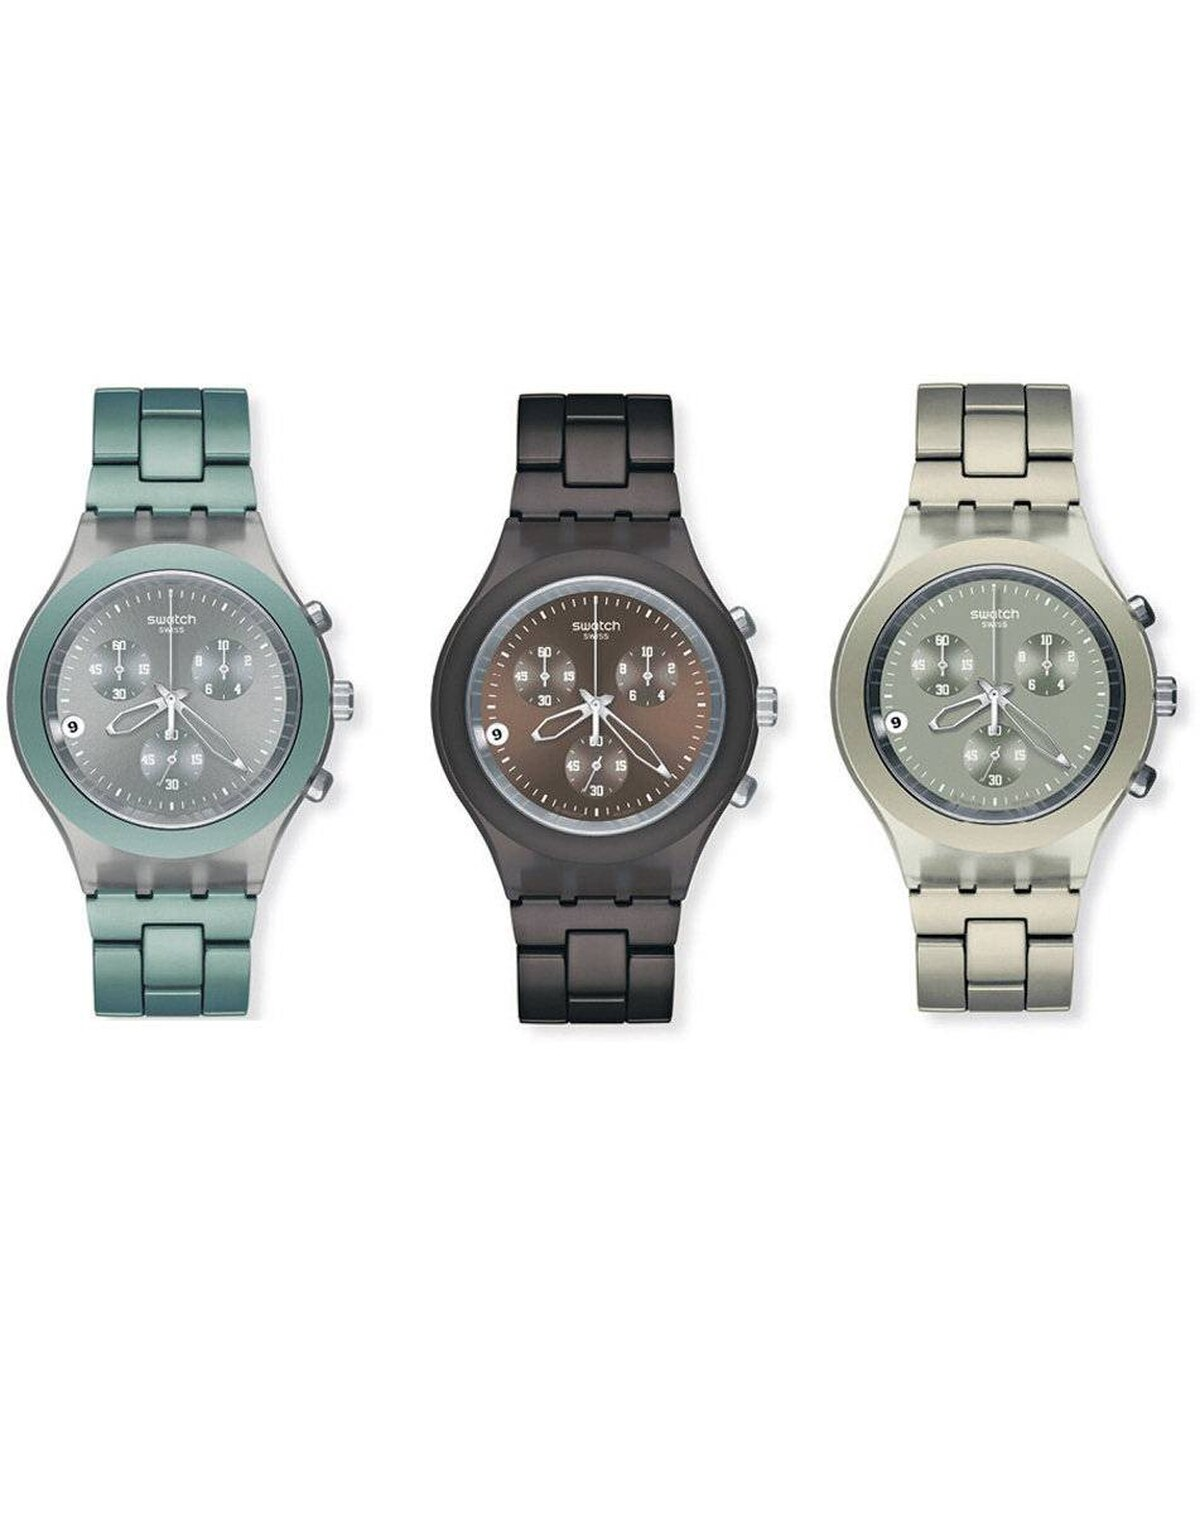 Time flies when you're a dad: Make sure yours is ahead of his sked with a fashion-forward timepiece with (discreetly) coloured band and dial. Full-Blooded watches by Swatch in, from top to bottom, Mint, Smoky Brown and Smoky Grey, $185 at Swatch boutiques across Canada (www.swatch.com).